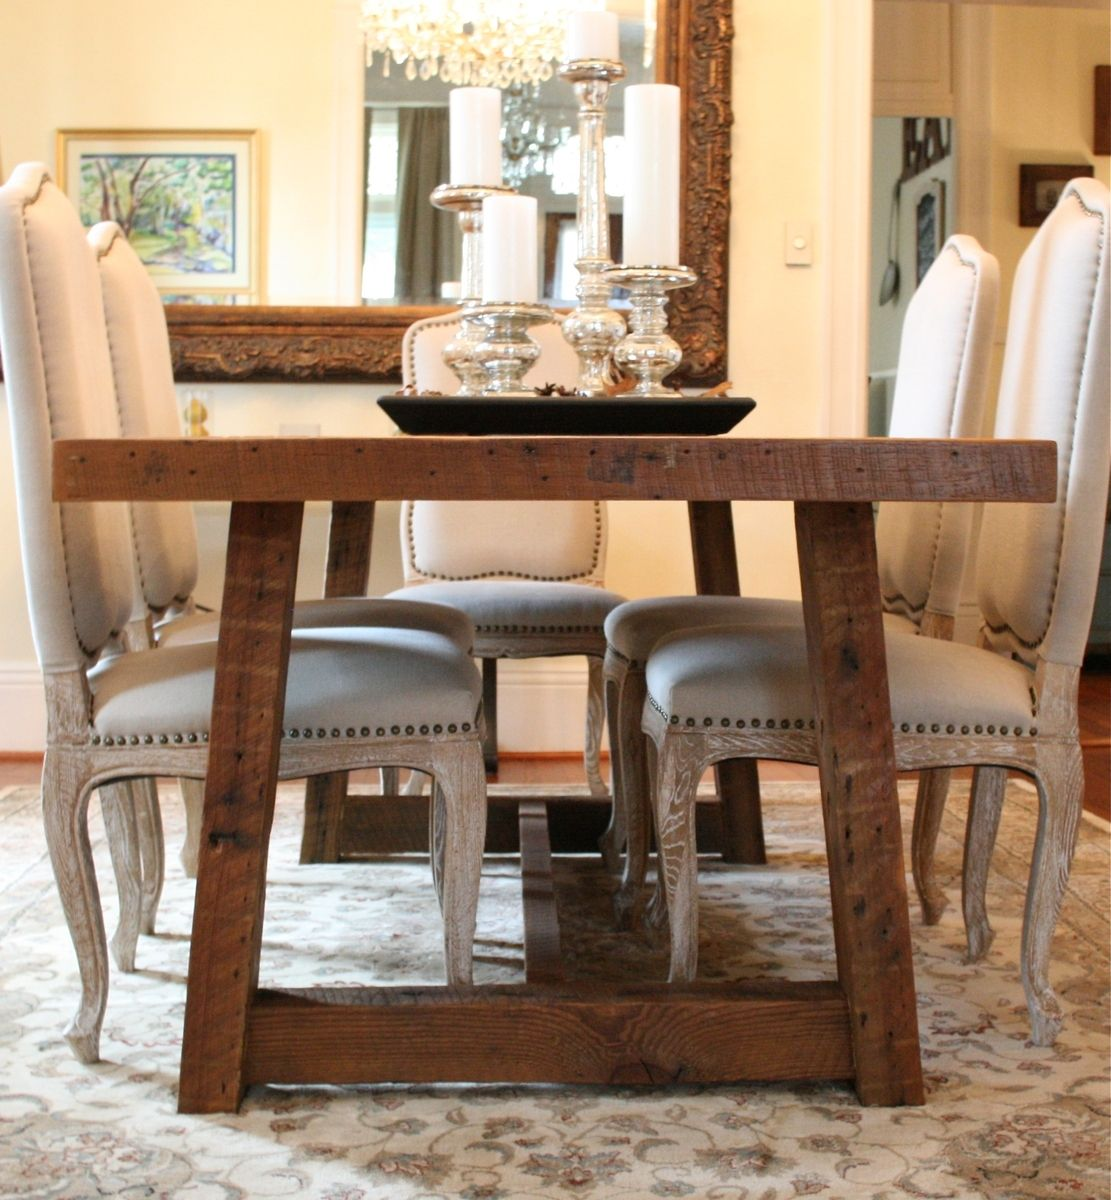 Farm Tables Dining Room: Custom The Pecky Dining Table-Farmhouse Style Table Made